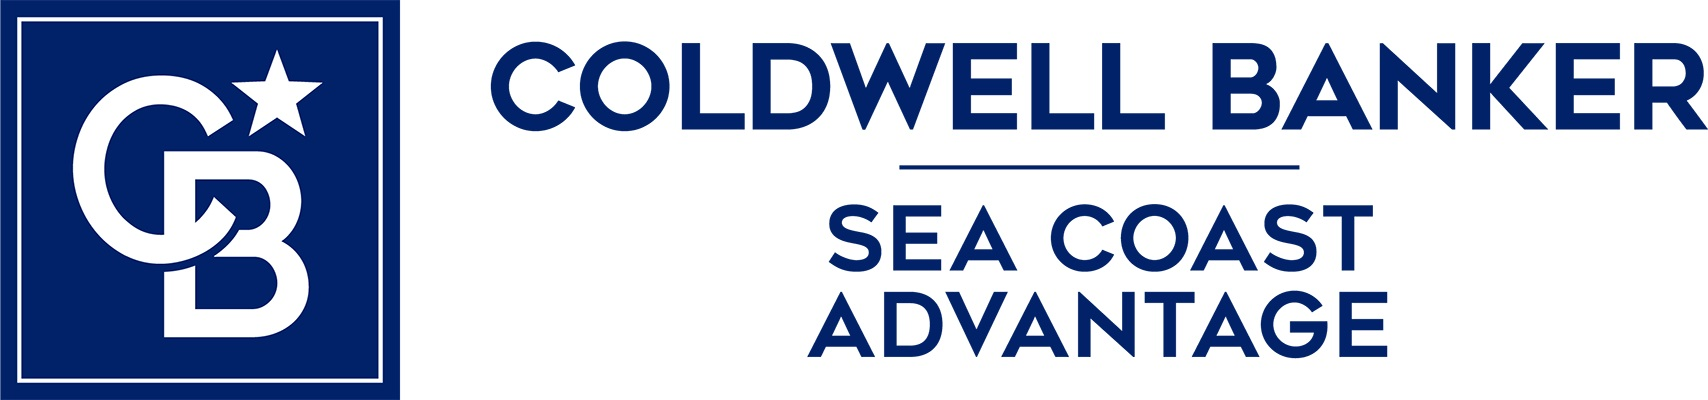 Geoff Dye - Coldwell Banker Sea Coast Advantage Realty Logo